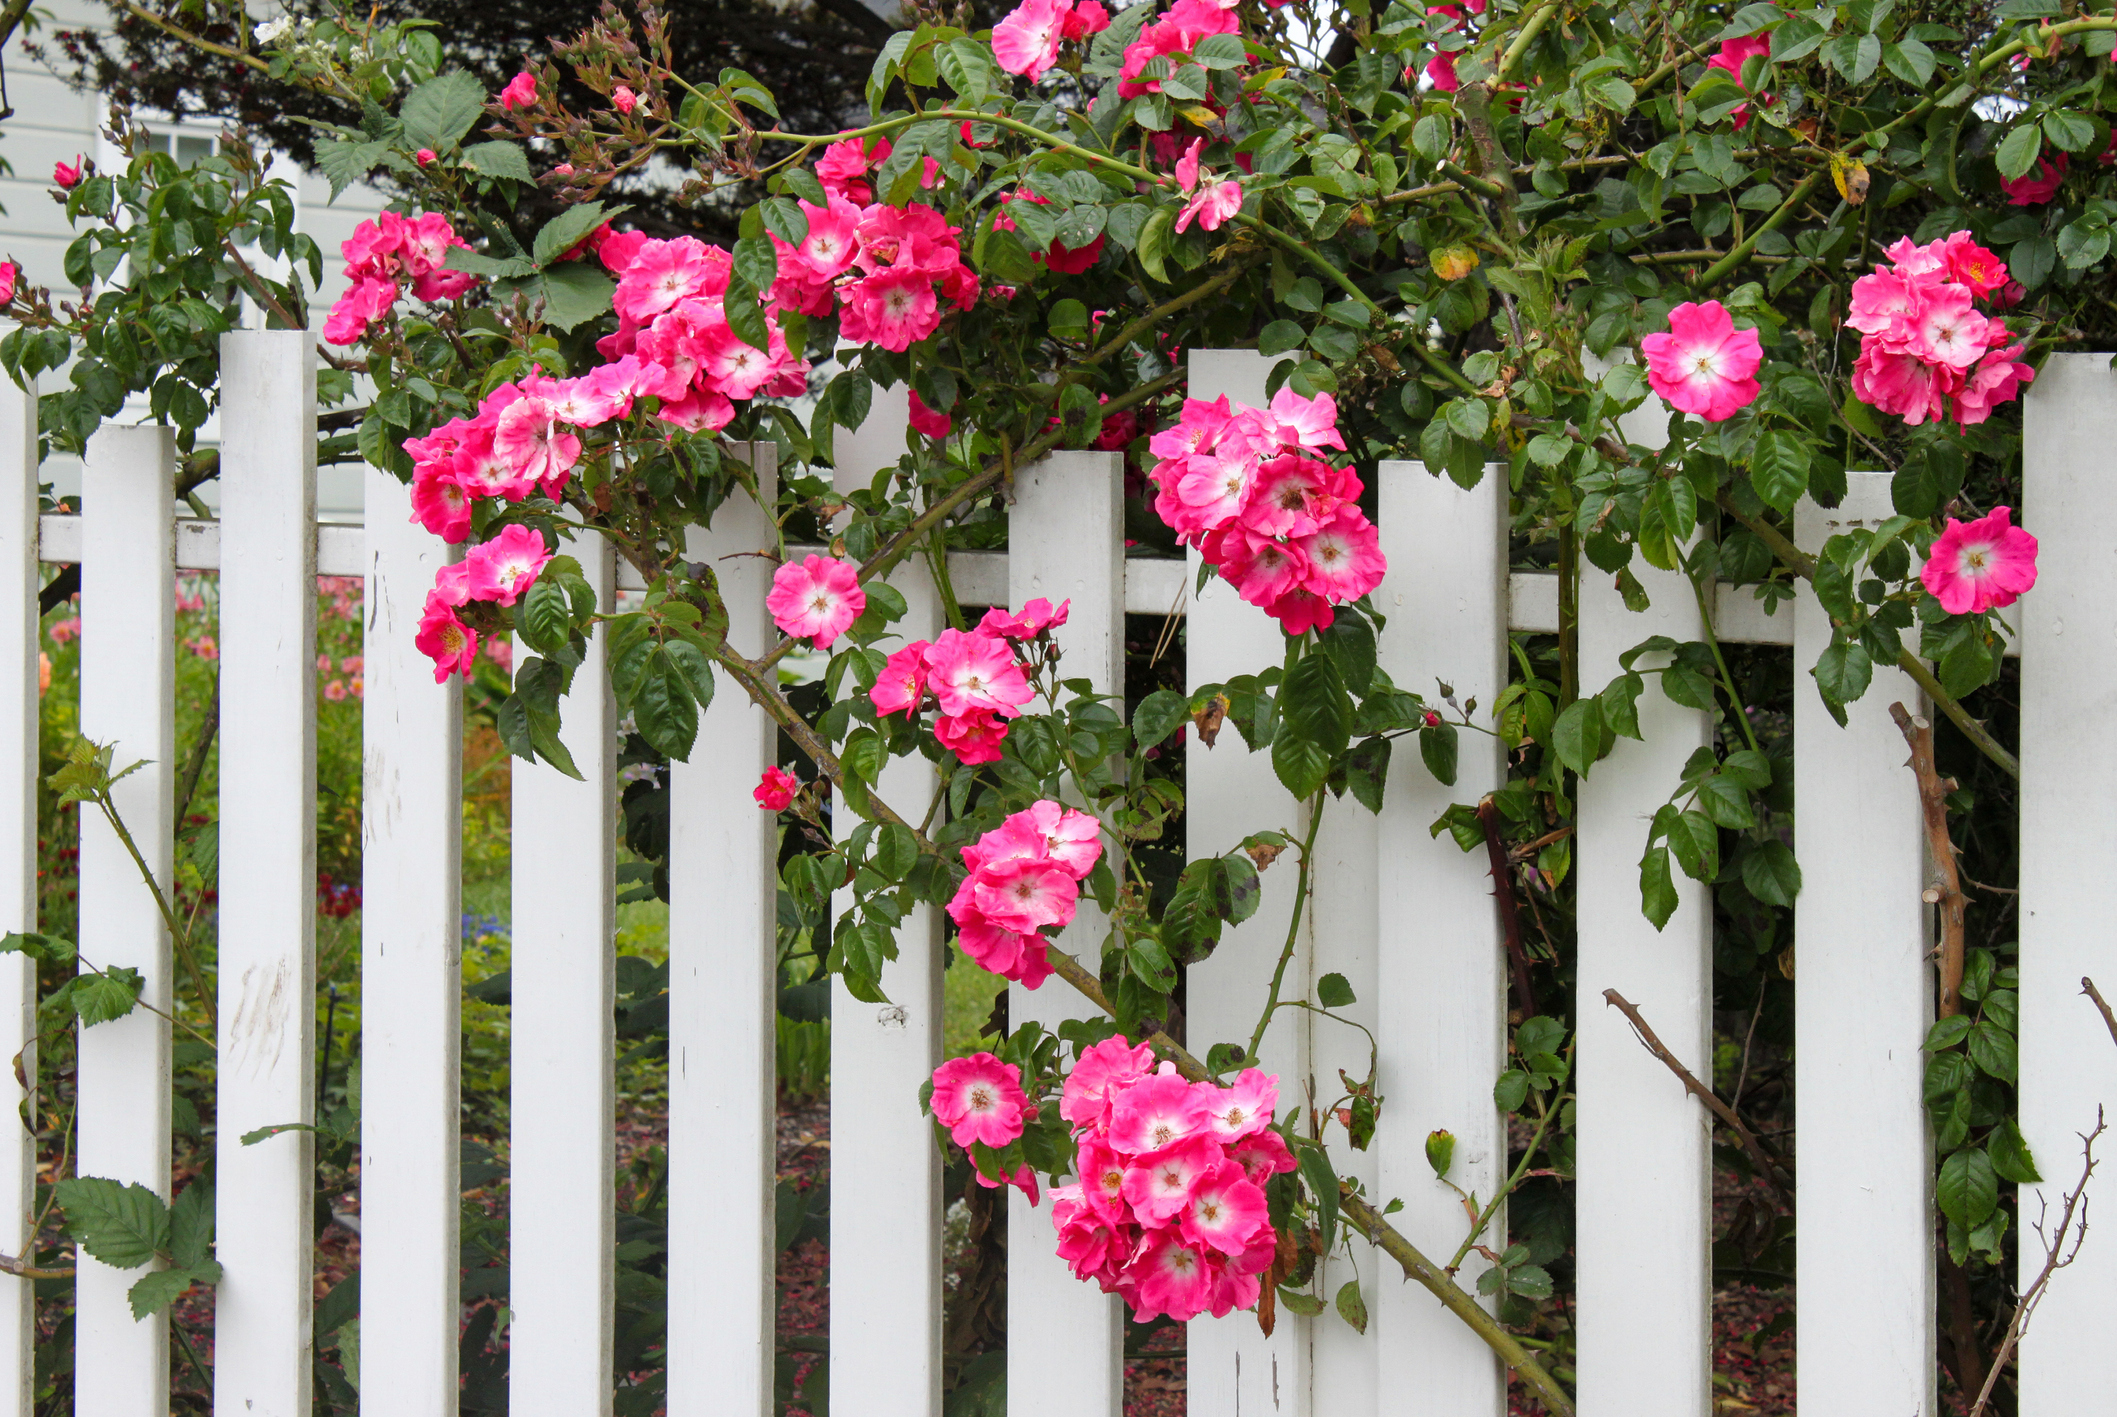 Fences with Vines